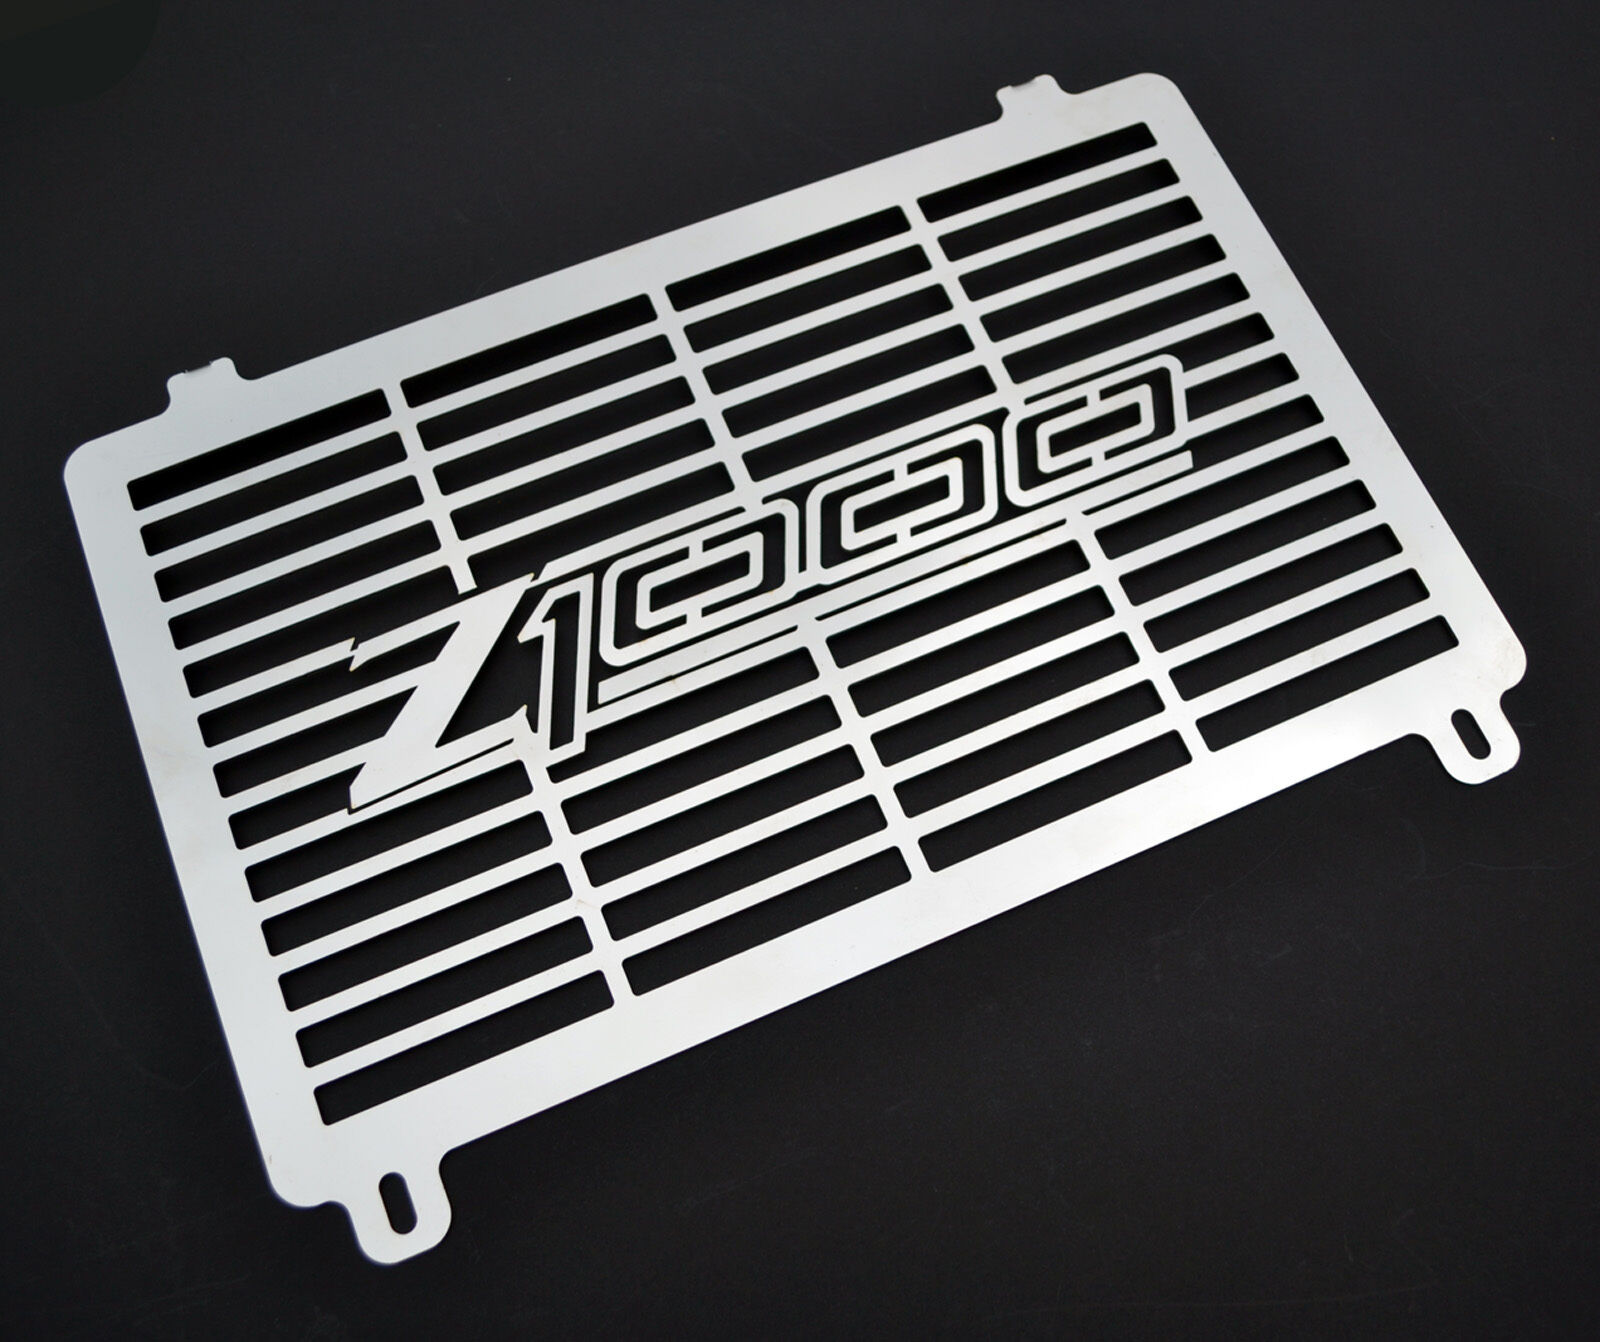 Kawasaki Z1000 (03 - 06) Stainless Steel Radiator Cover Guard Grill ...